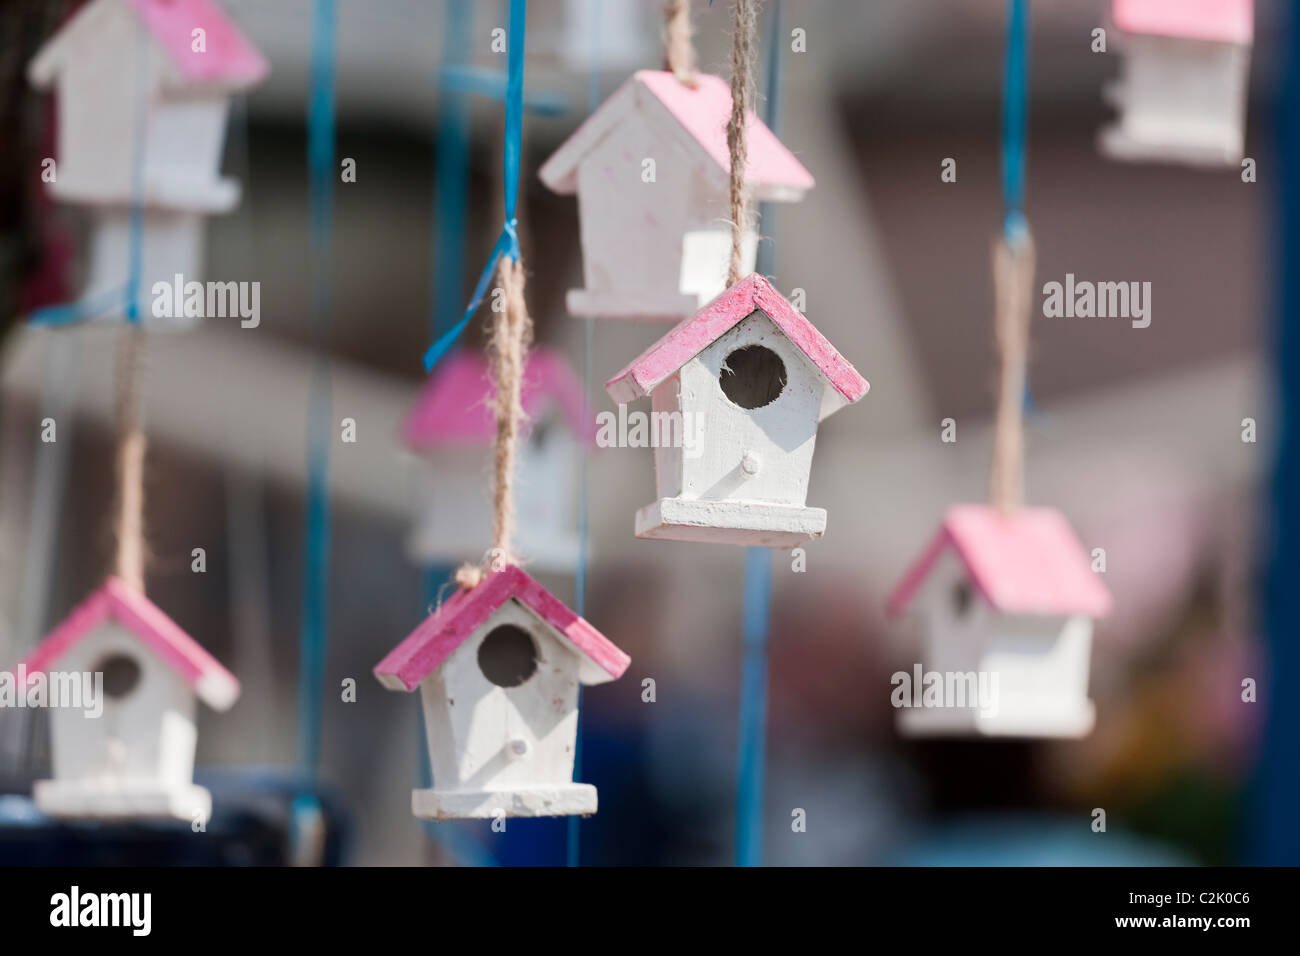 Small birdhouse used as decoration. Little bird houses strings attached hanging. Garden decorations at the Keukenhof, - Stock Image